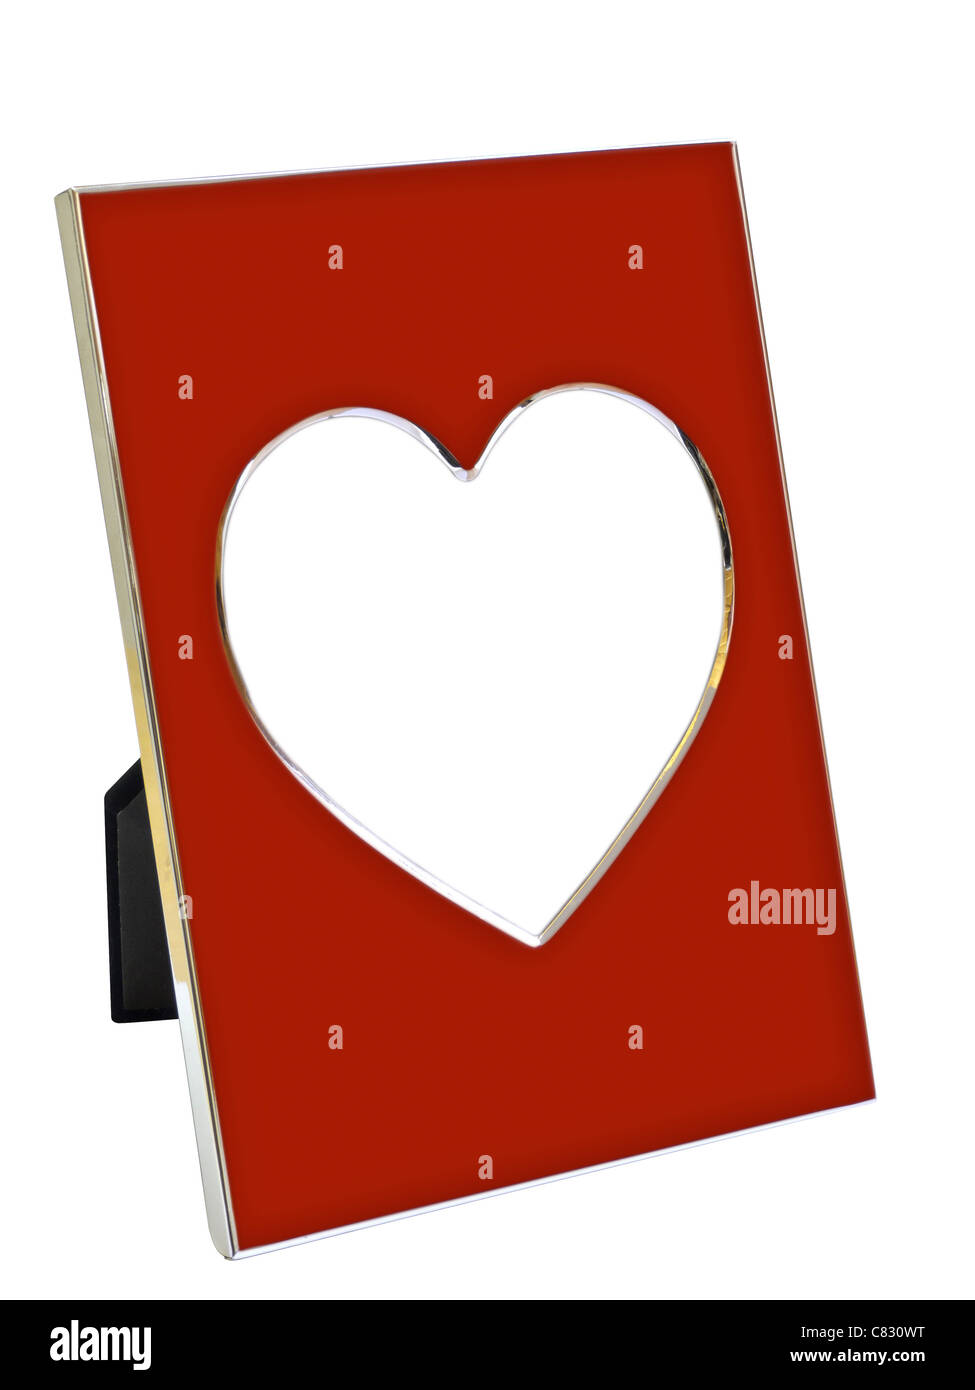 Heart Shaped Frame Stock Photos & Heart Shaped Frame Stock Images ...